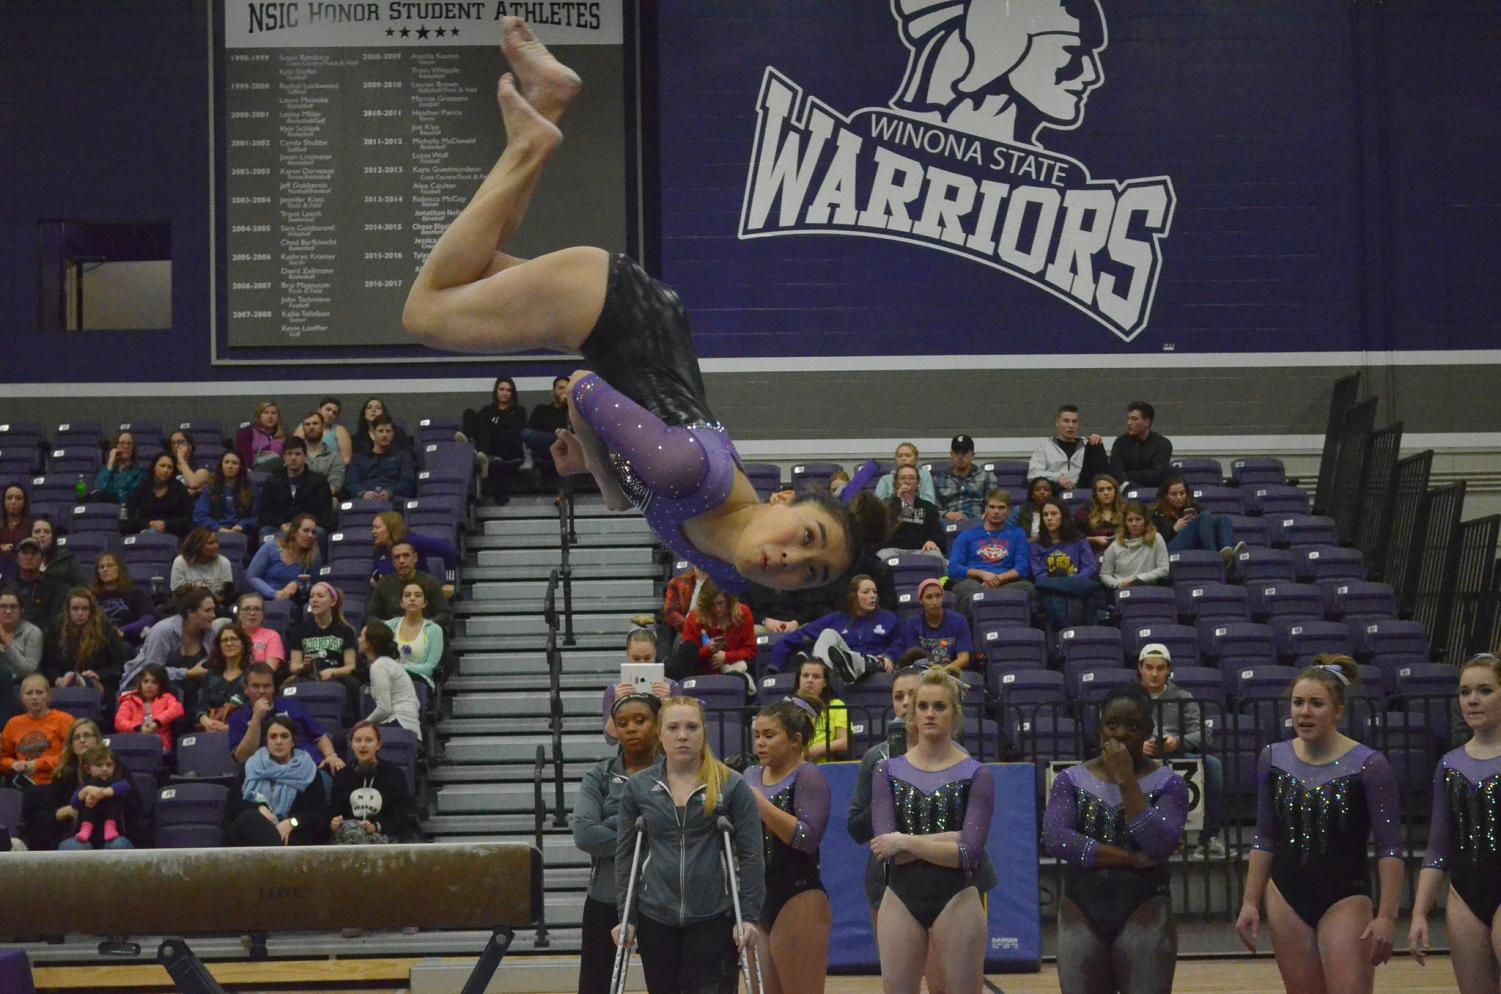 Sophomore Sunny Hasebe dismounts after completing her beam routine during Friday's meet against the University of Wisconsin-Oshkosh in McCown Gymnasium. The Warriors won 185.875-181.4.